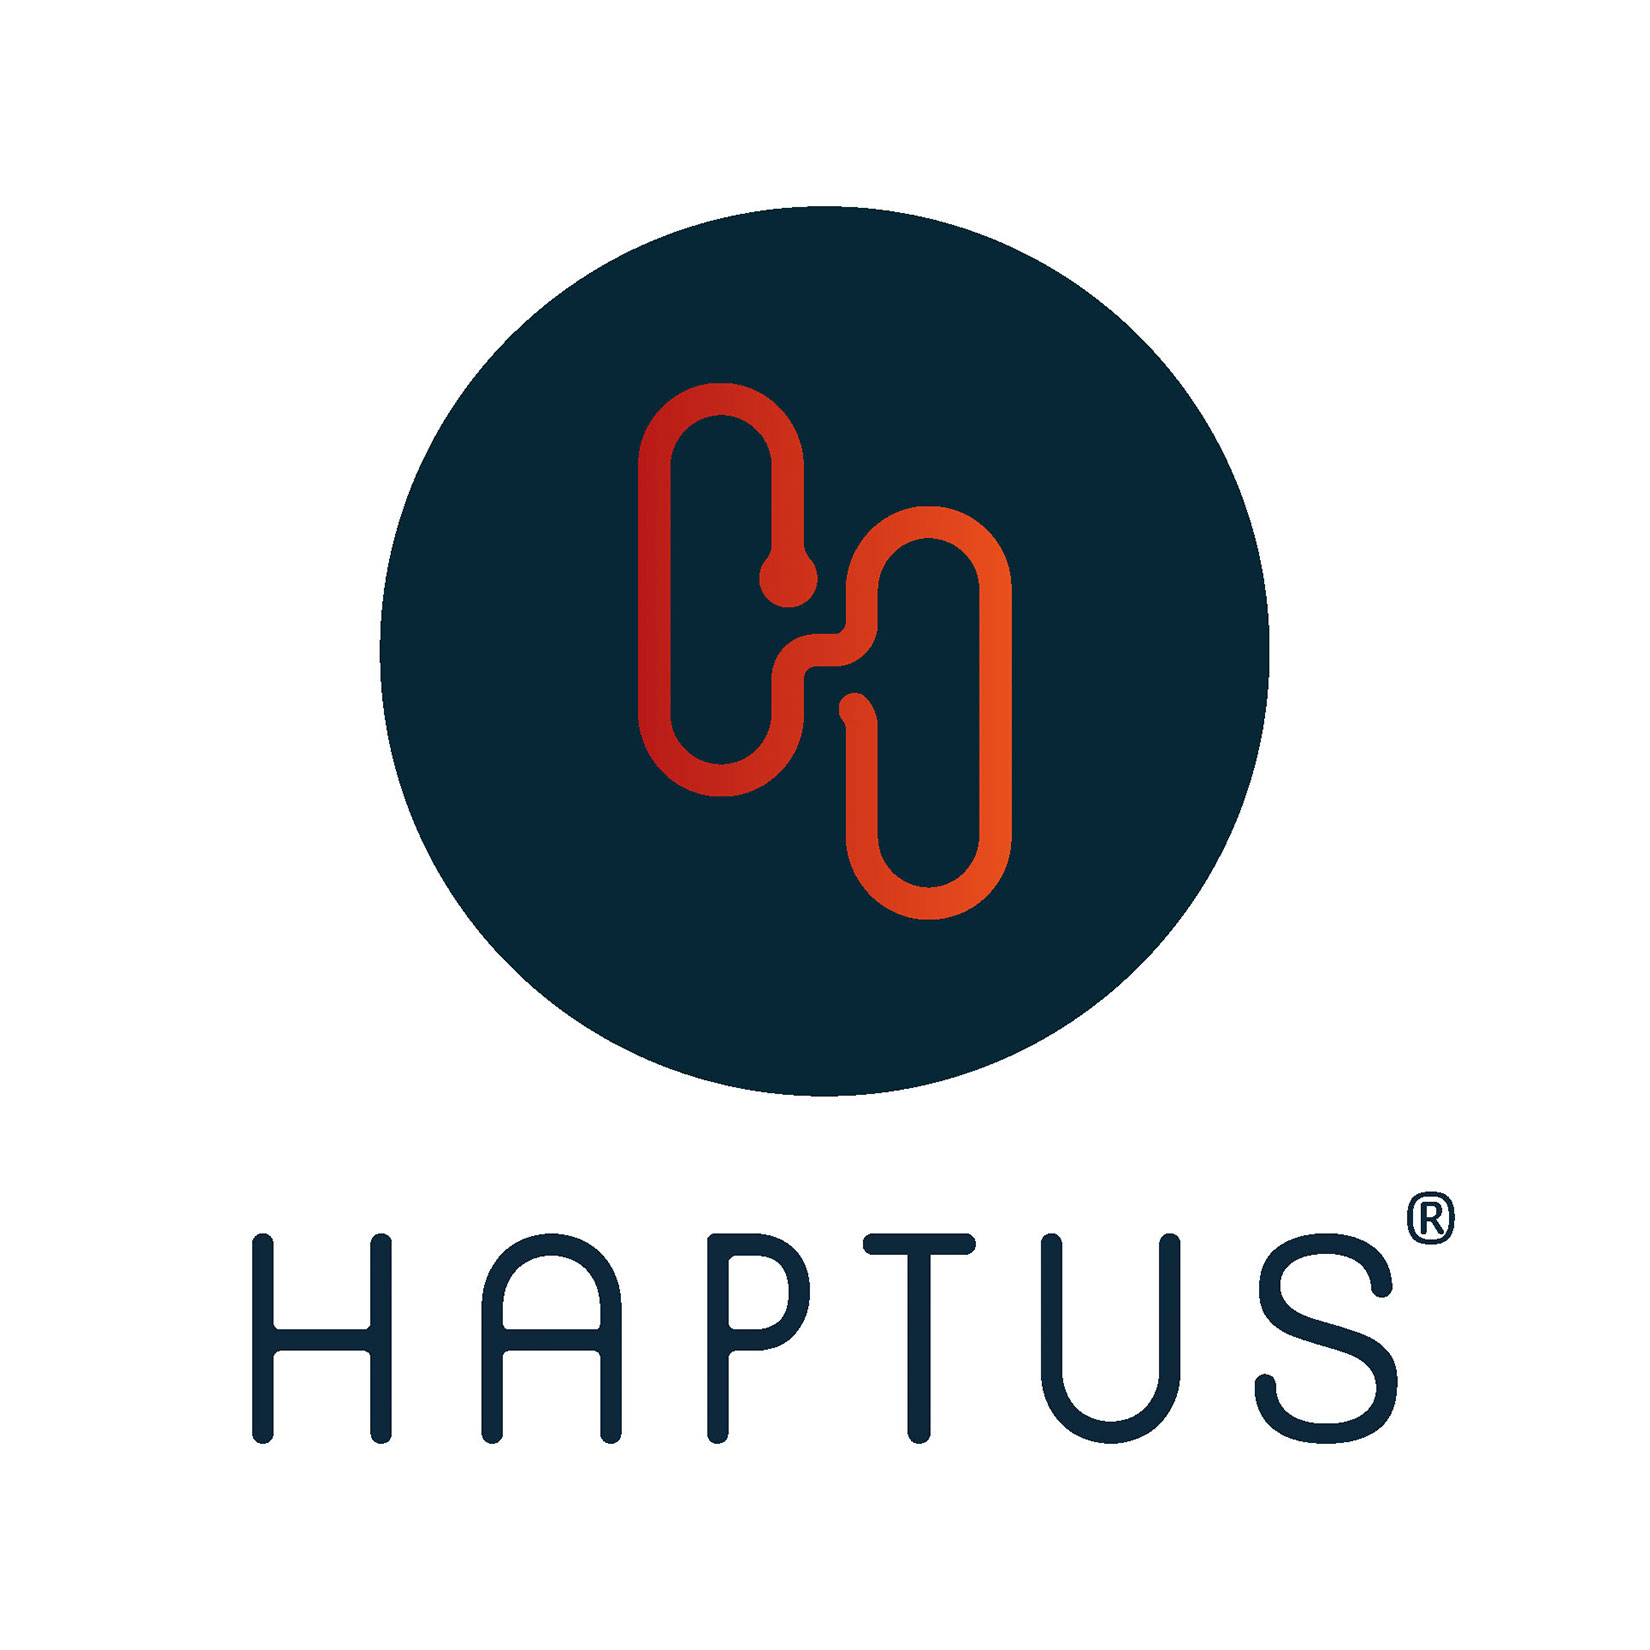 Haptus Corporate Design